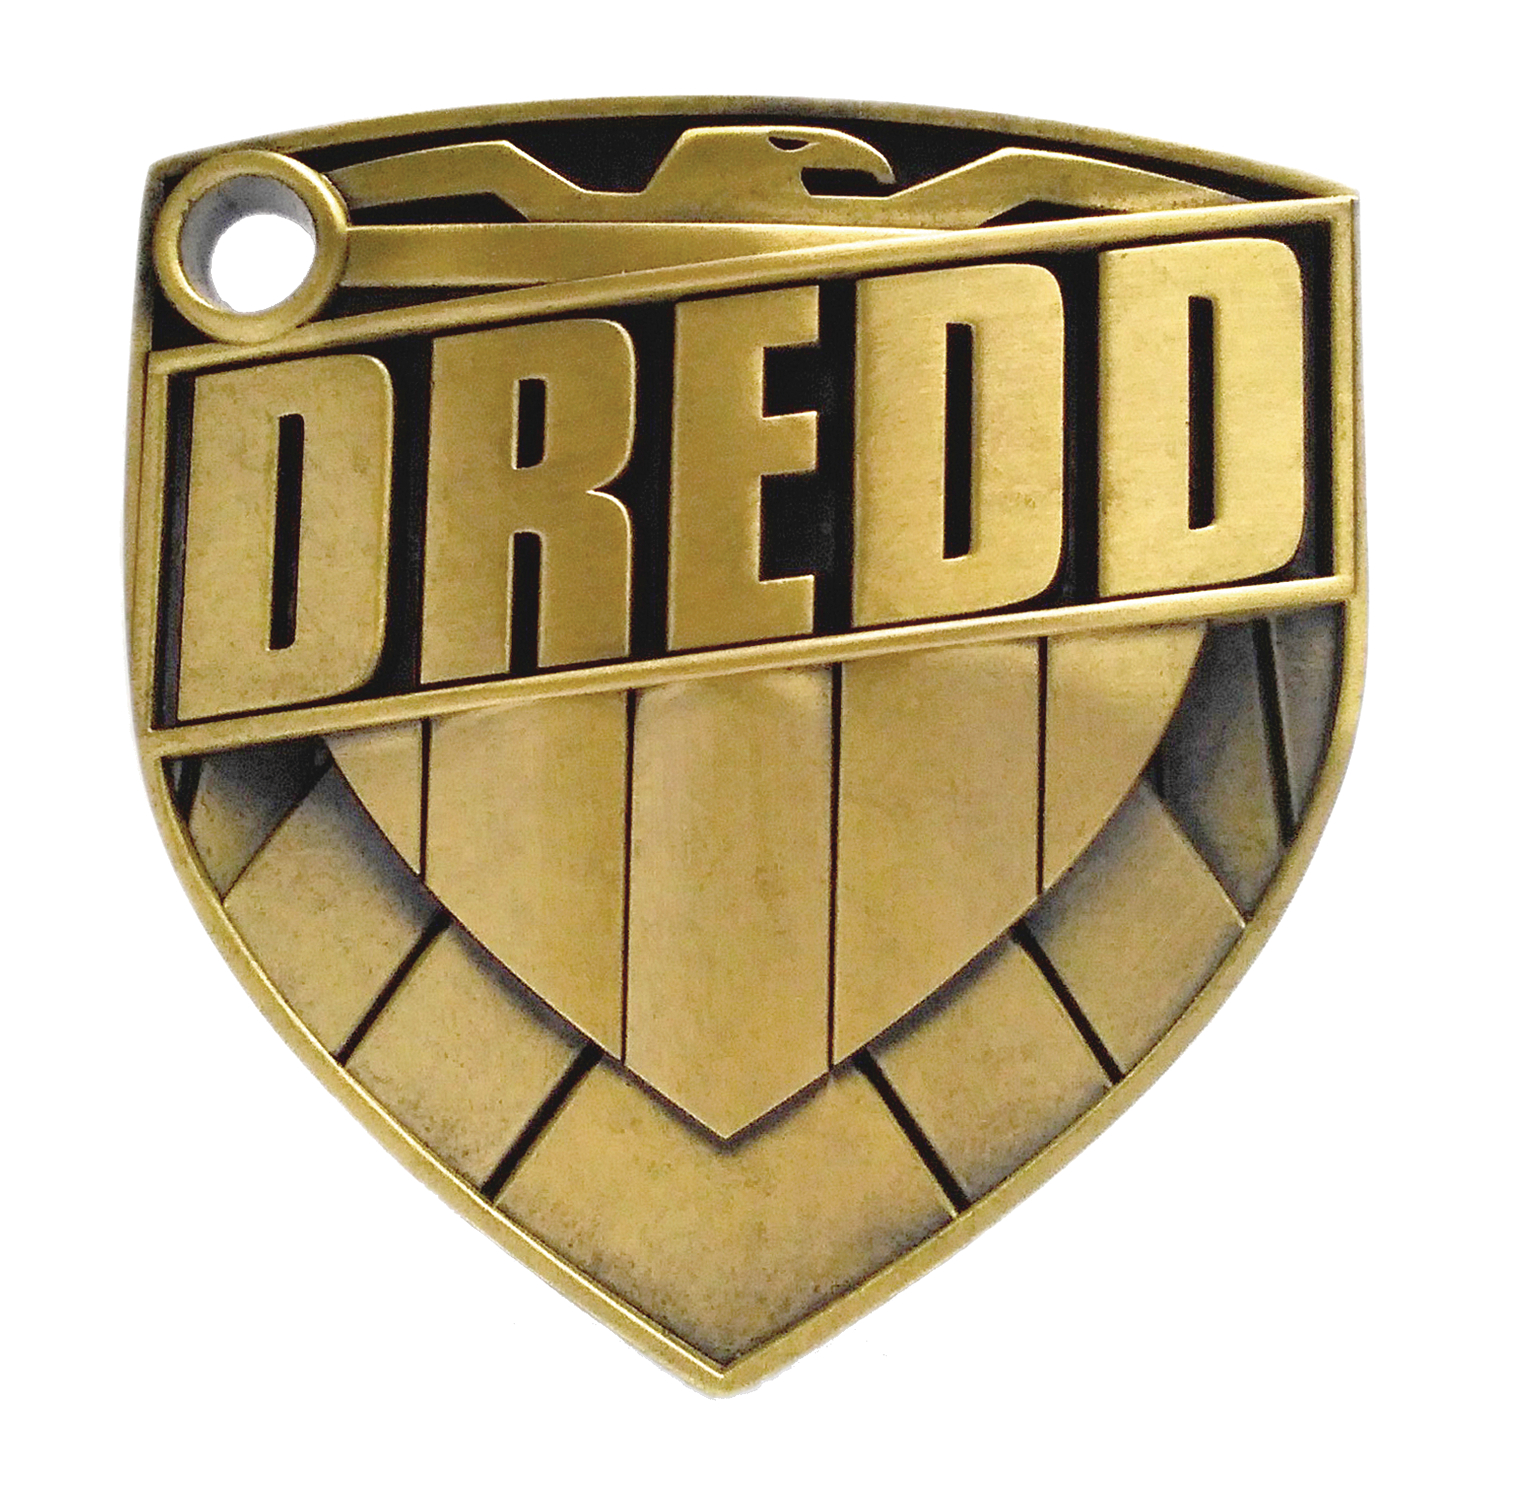 JUDGE DREDD METAL BADGE BY JOCK 1:1 PROP REPLICA